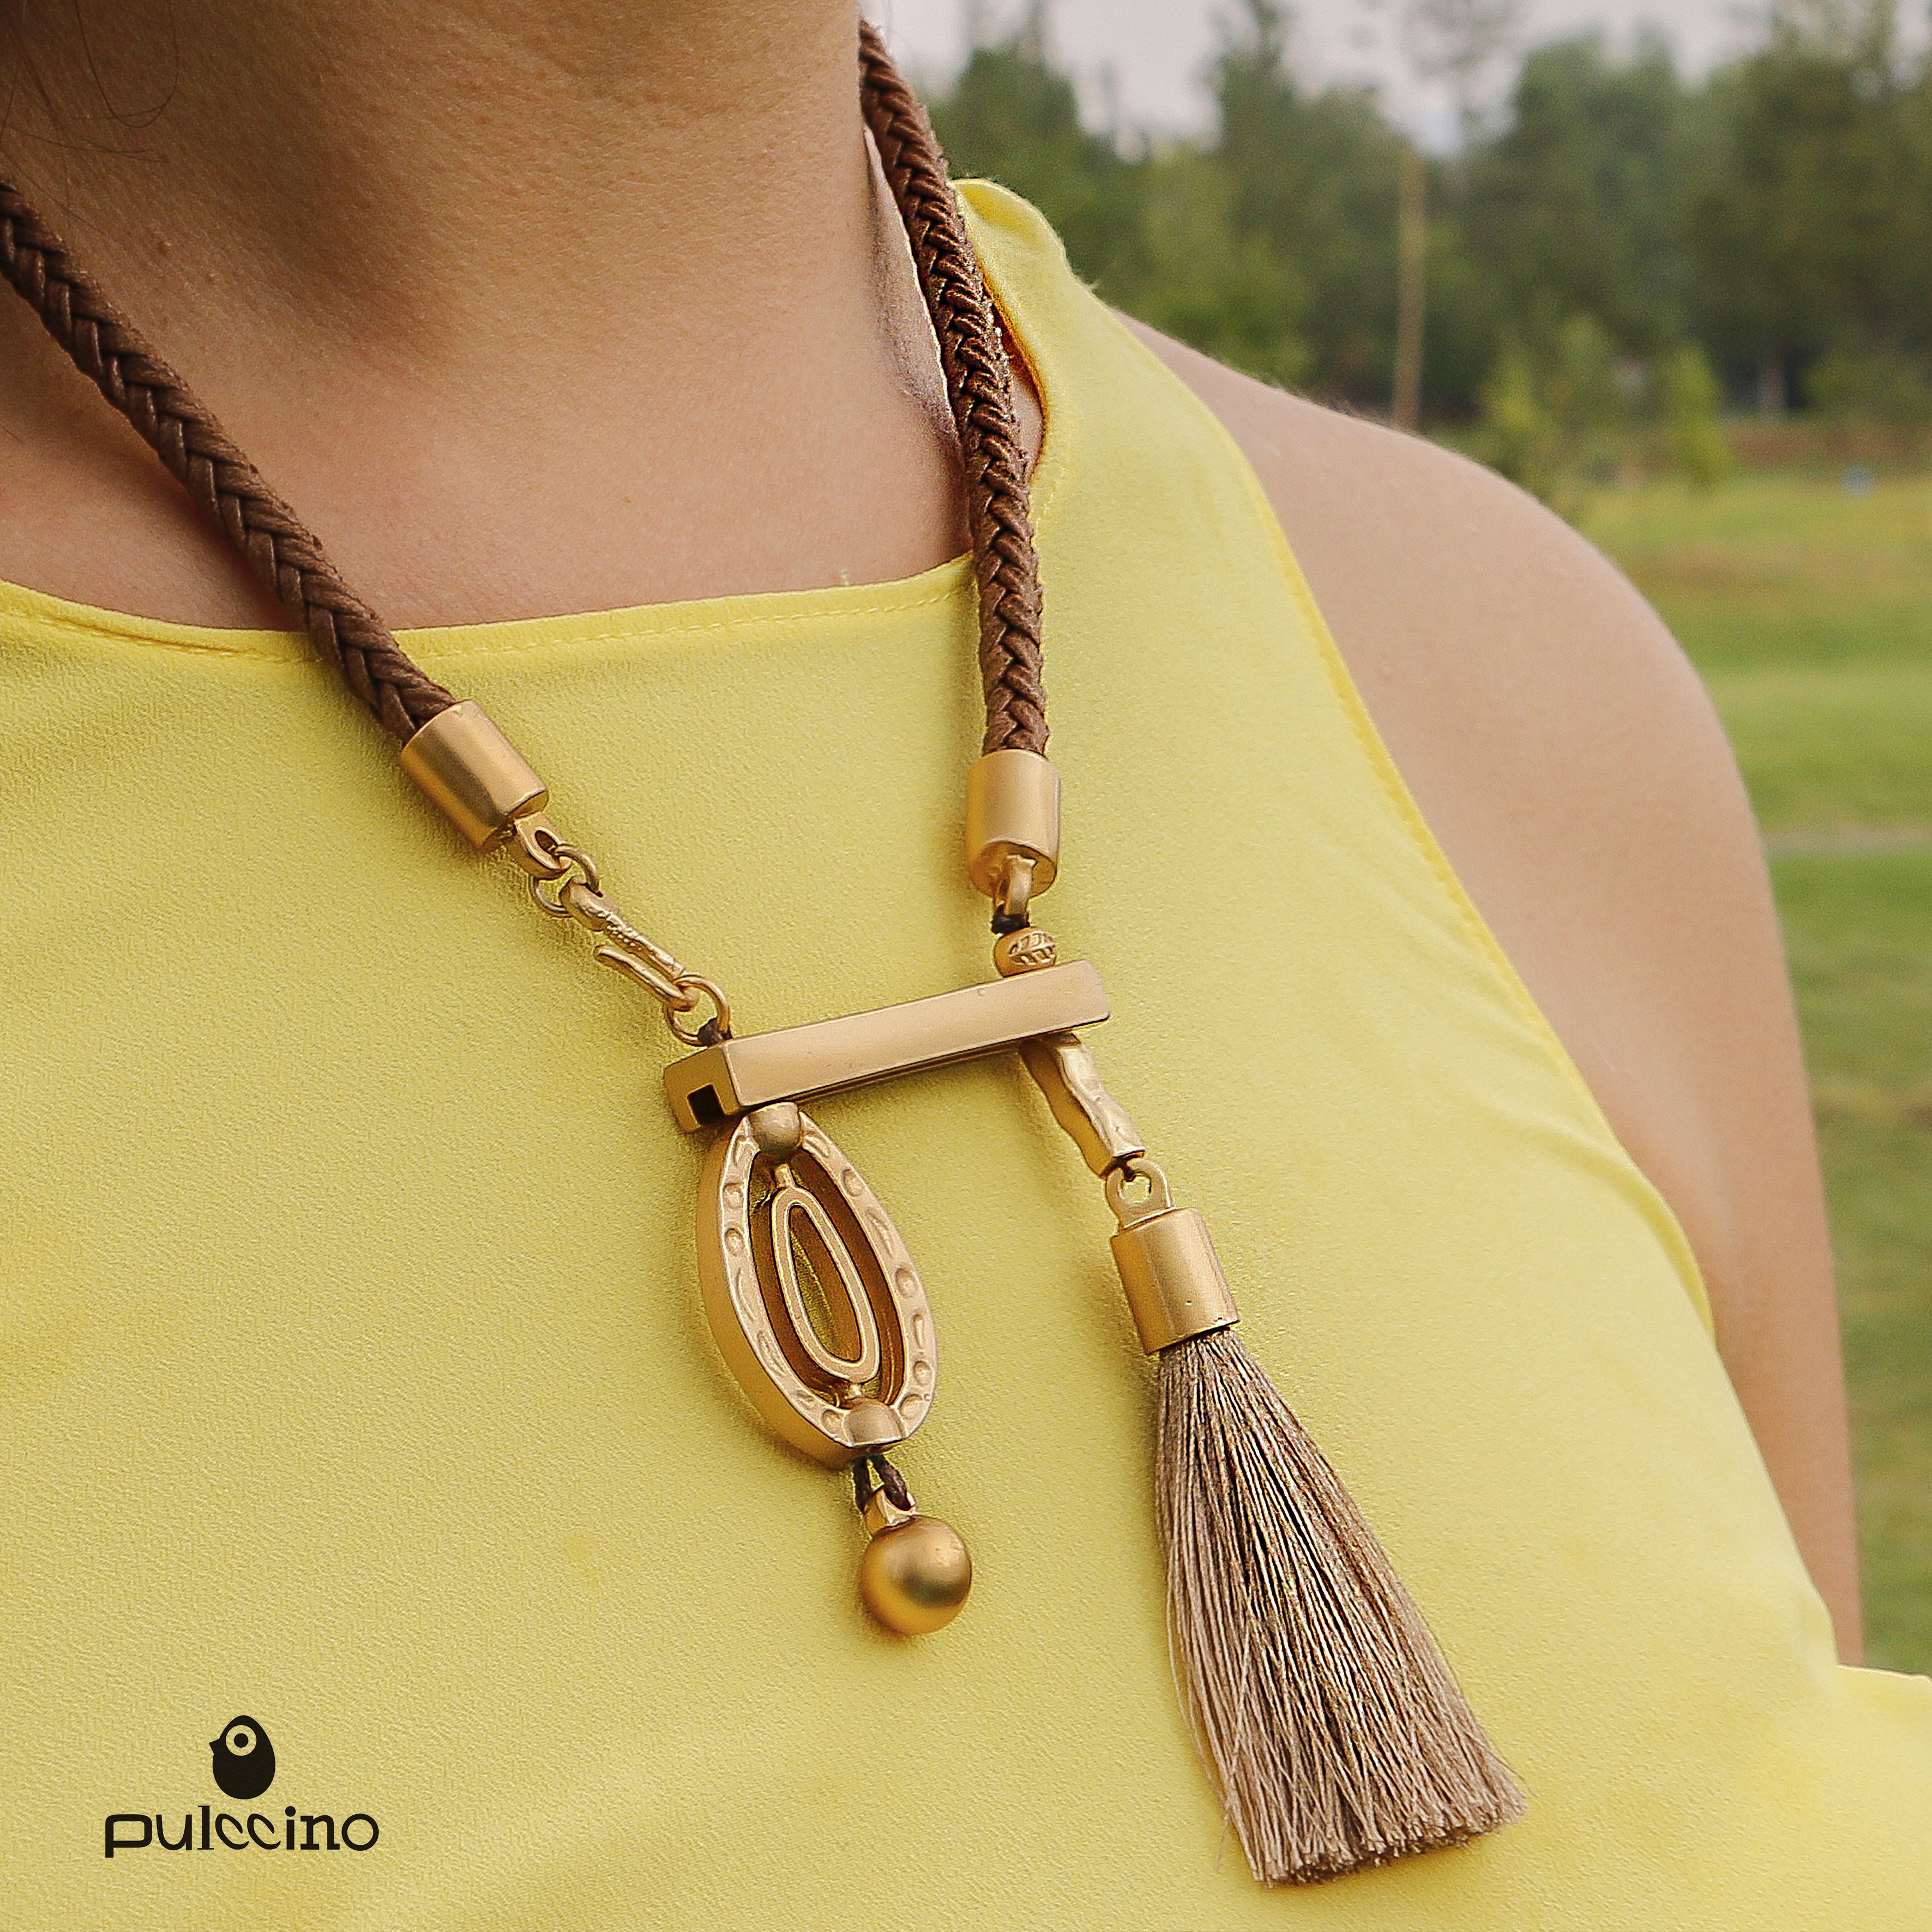 pulccino #pulccinooficial #collares #accesorios #necklace ...